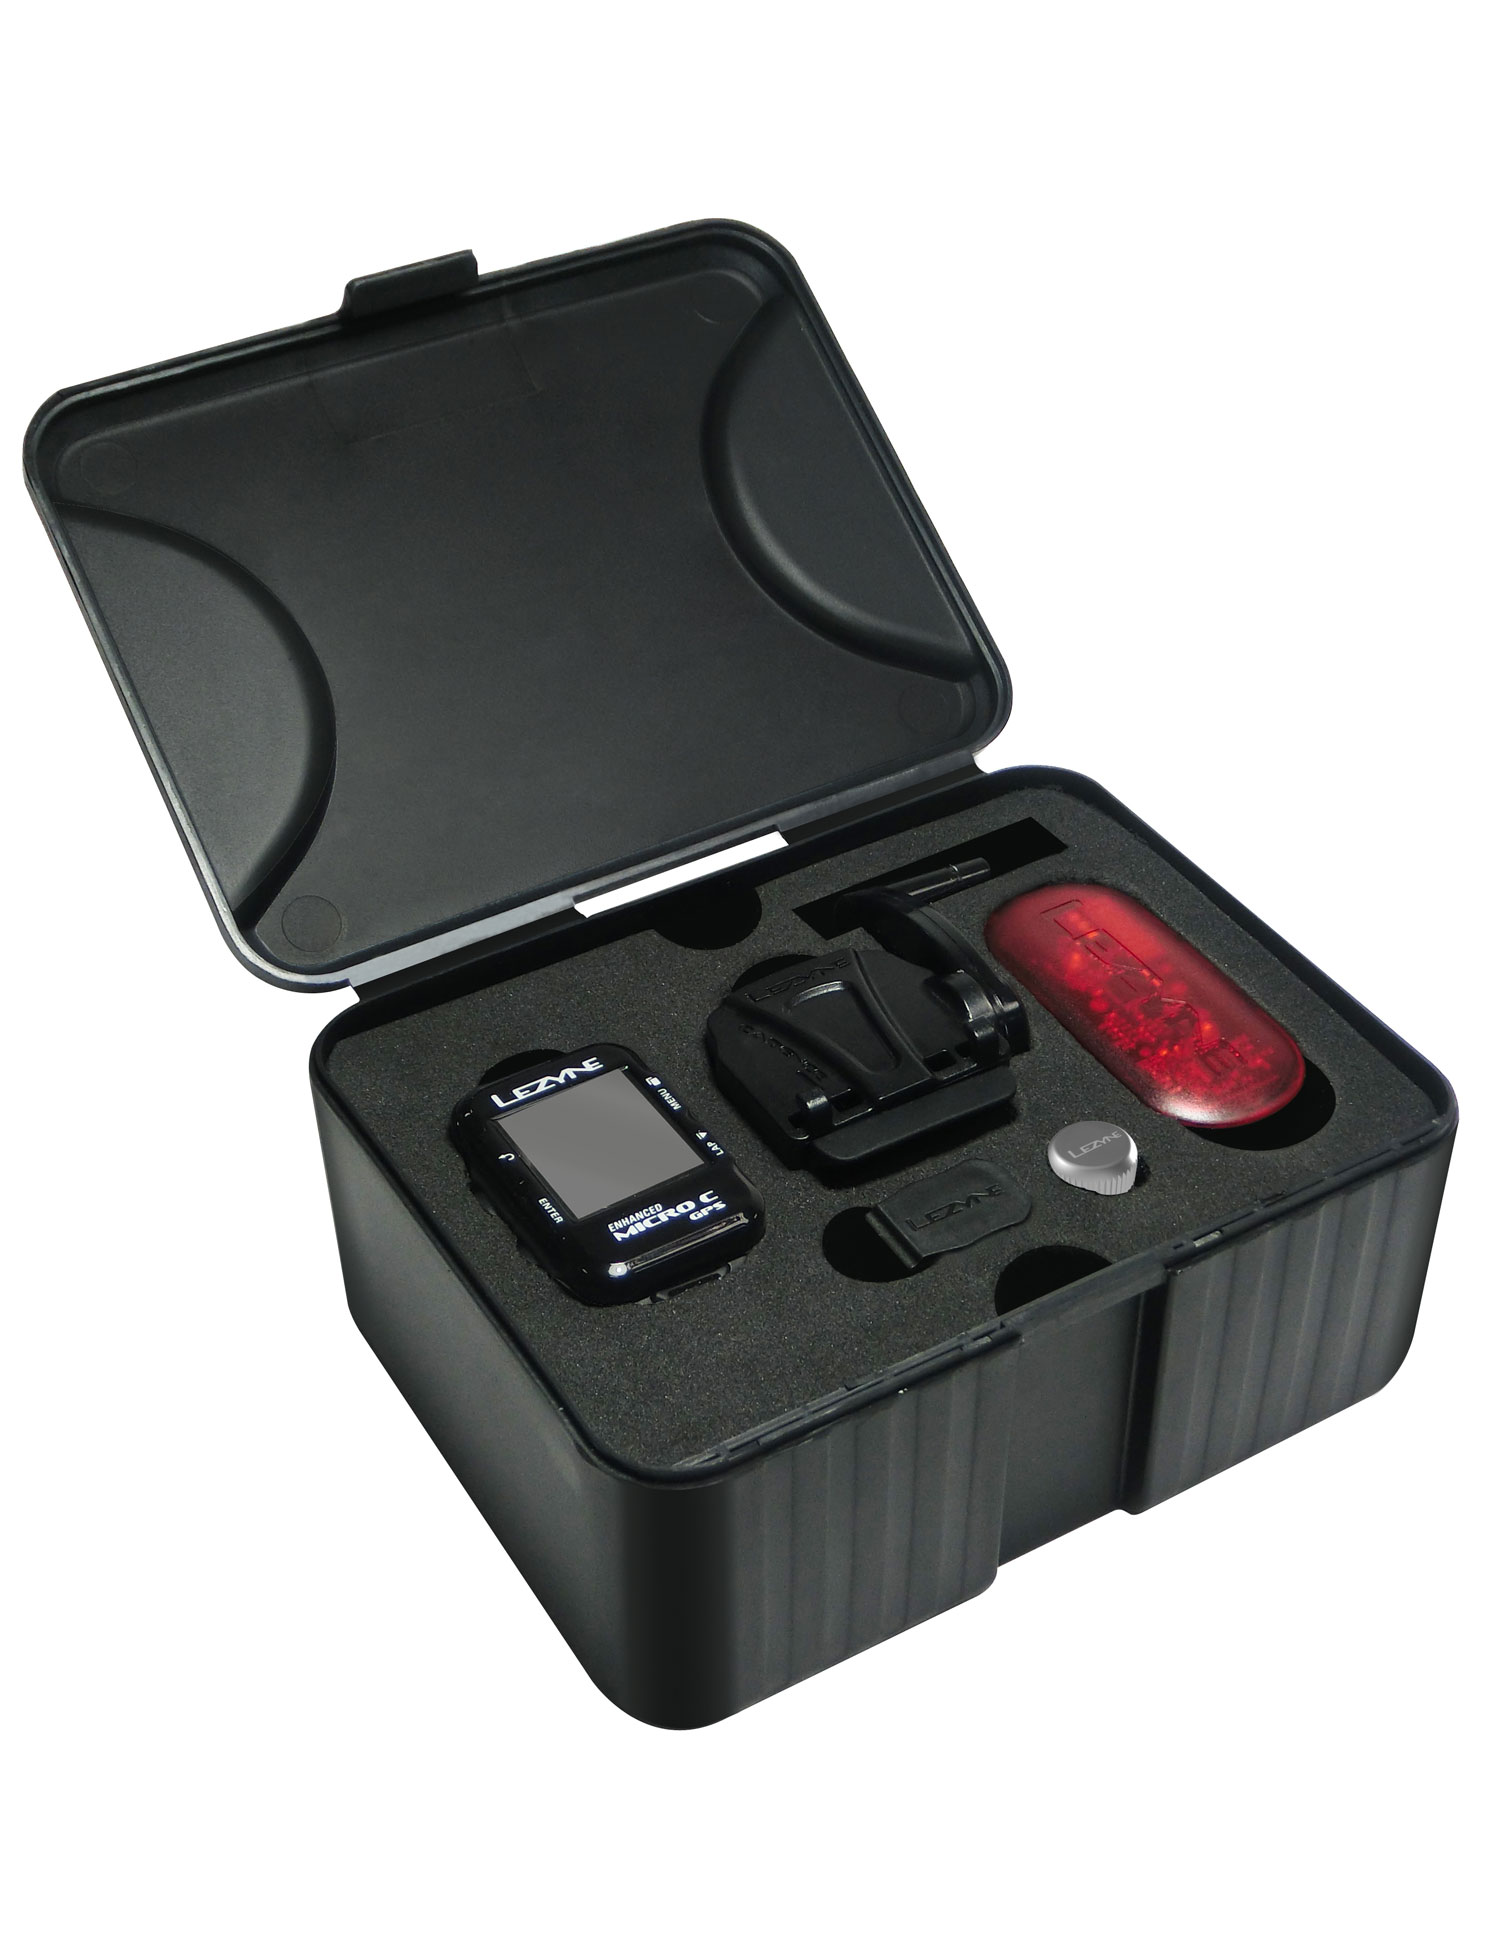 product-gps-microcgps-zoom16